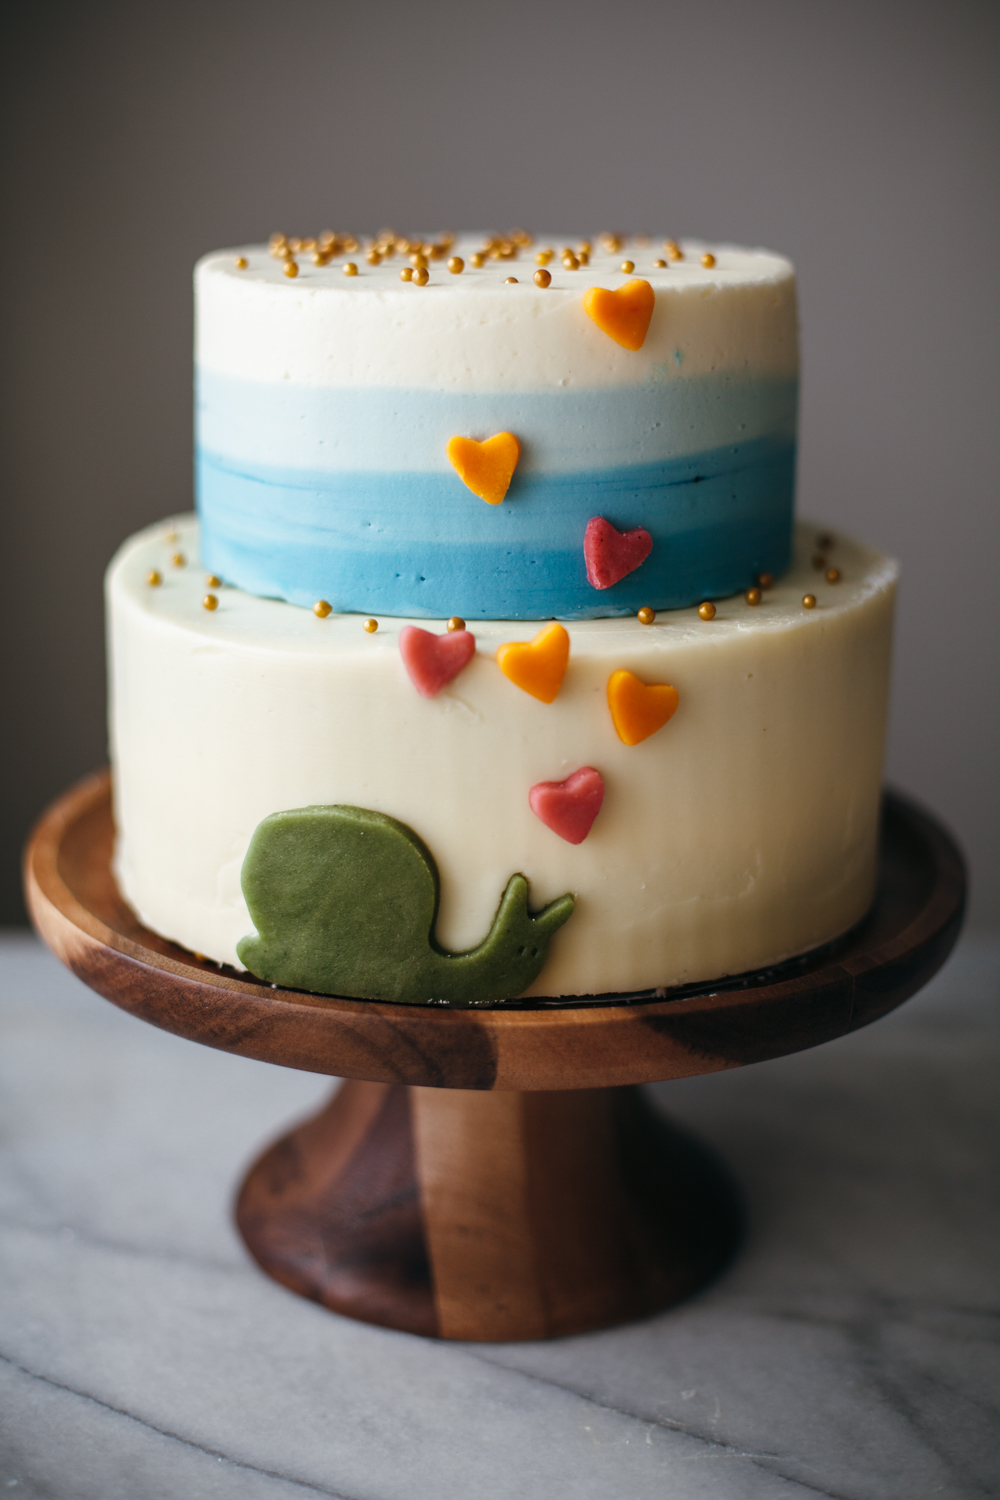 What Cake Decorating Tips Make What : cake decorating tips   molly yeh